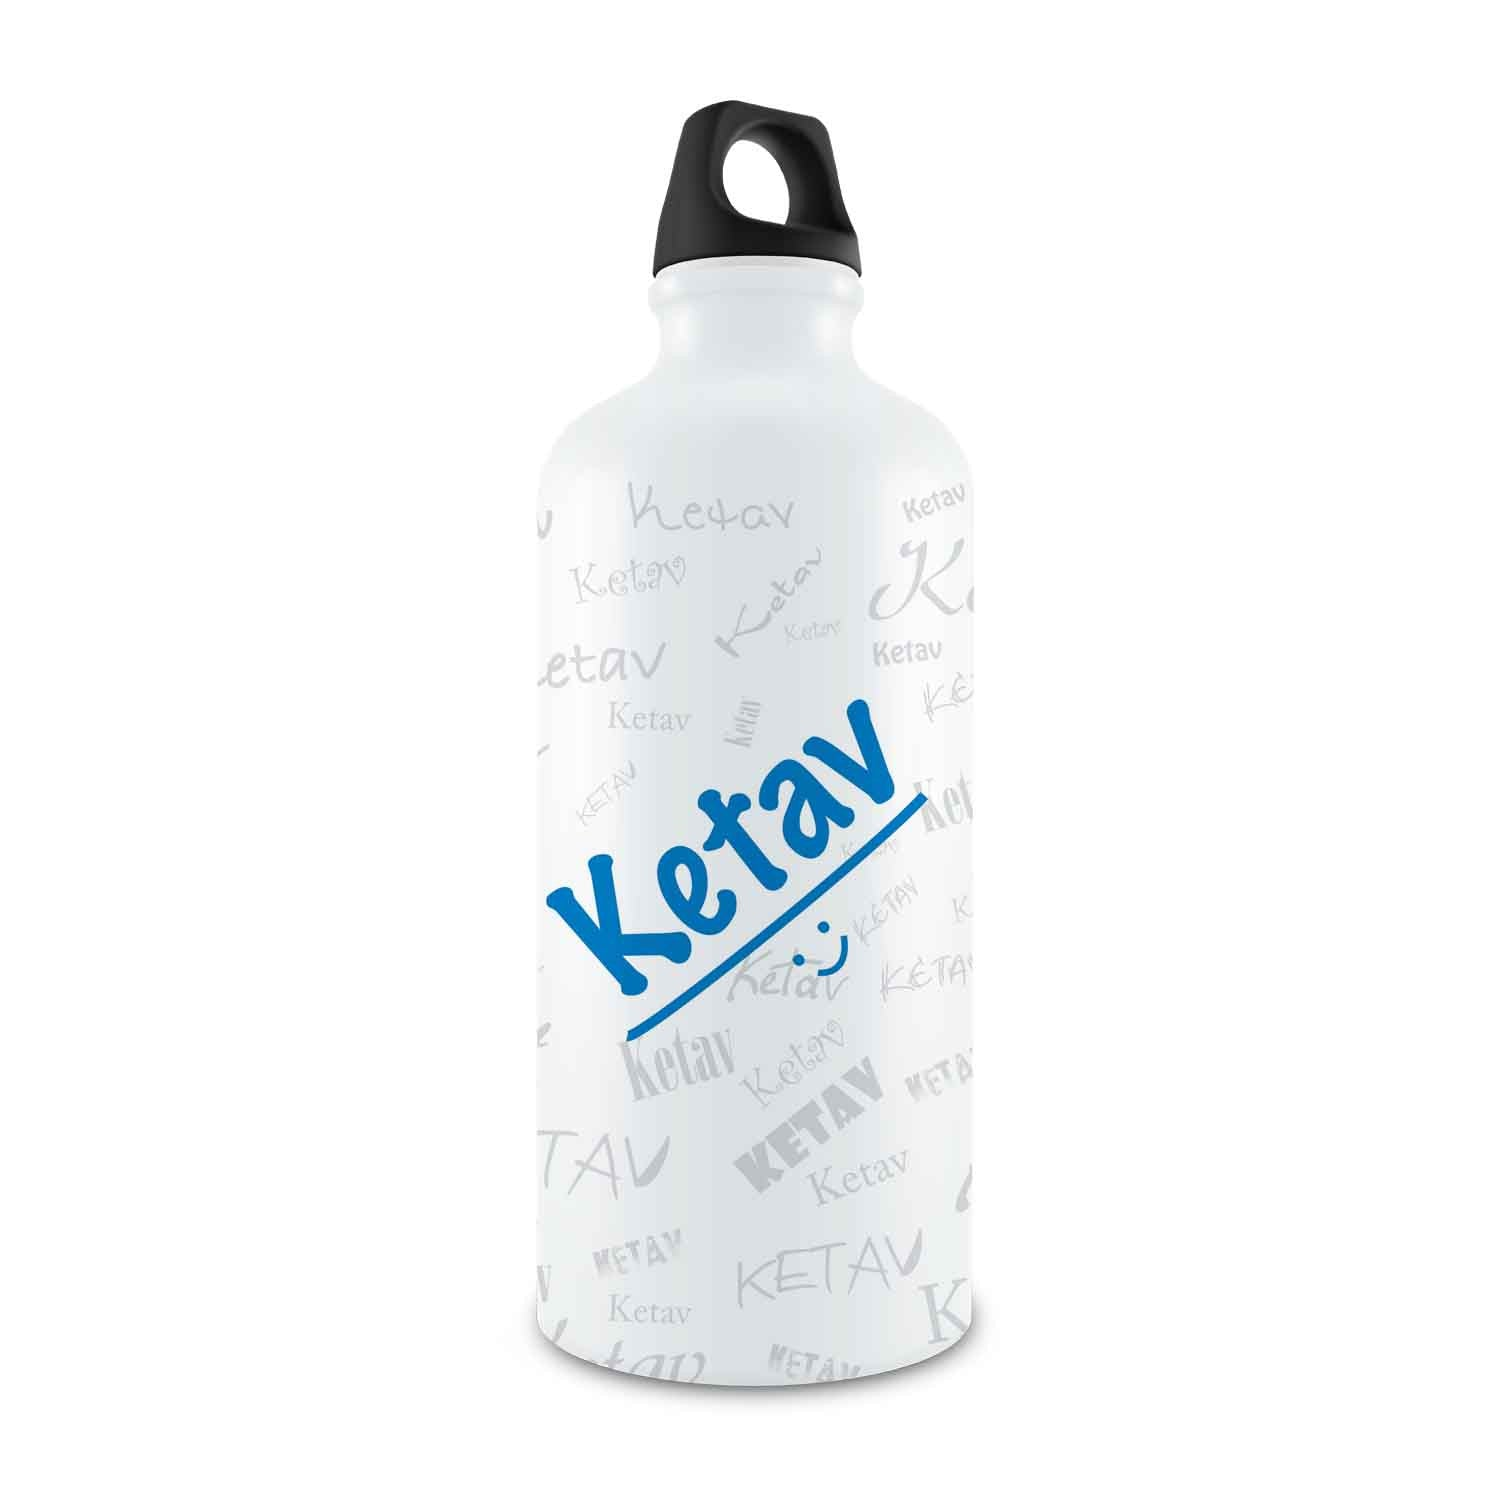 Me Graffiti Bottle - Ketav